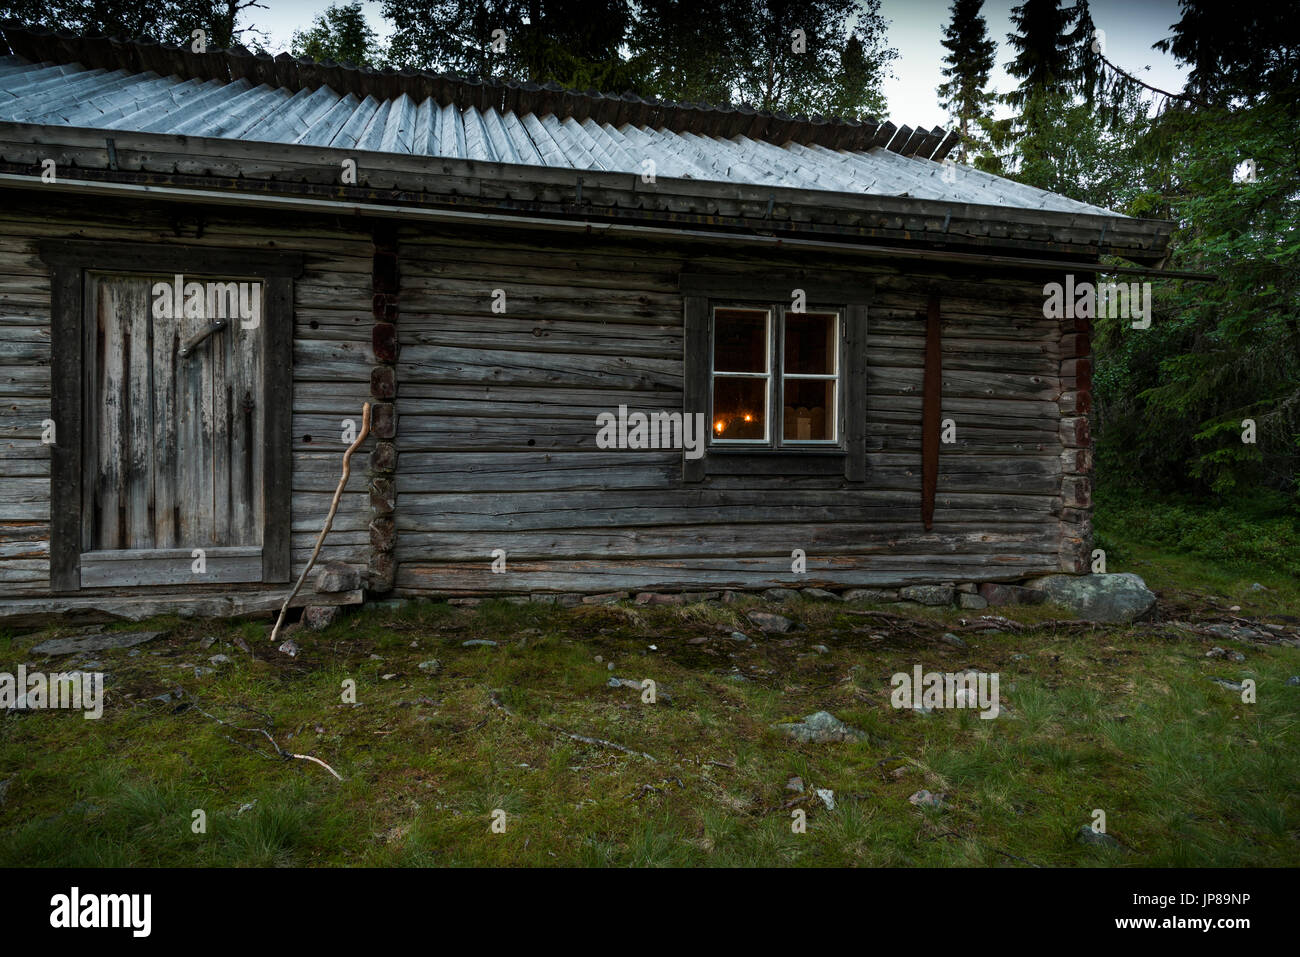 A lonely mountain hut in the forest in the nordic blue night. Two candles are lit inside. A wanderer's staff is resting against the wall. - Stock Image